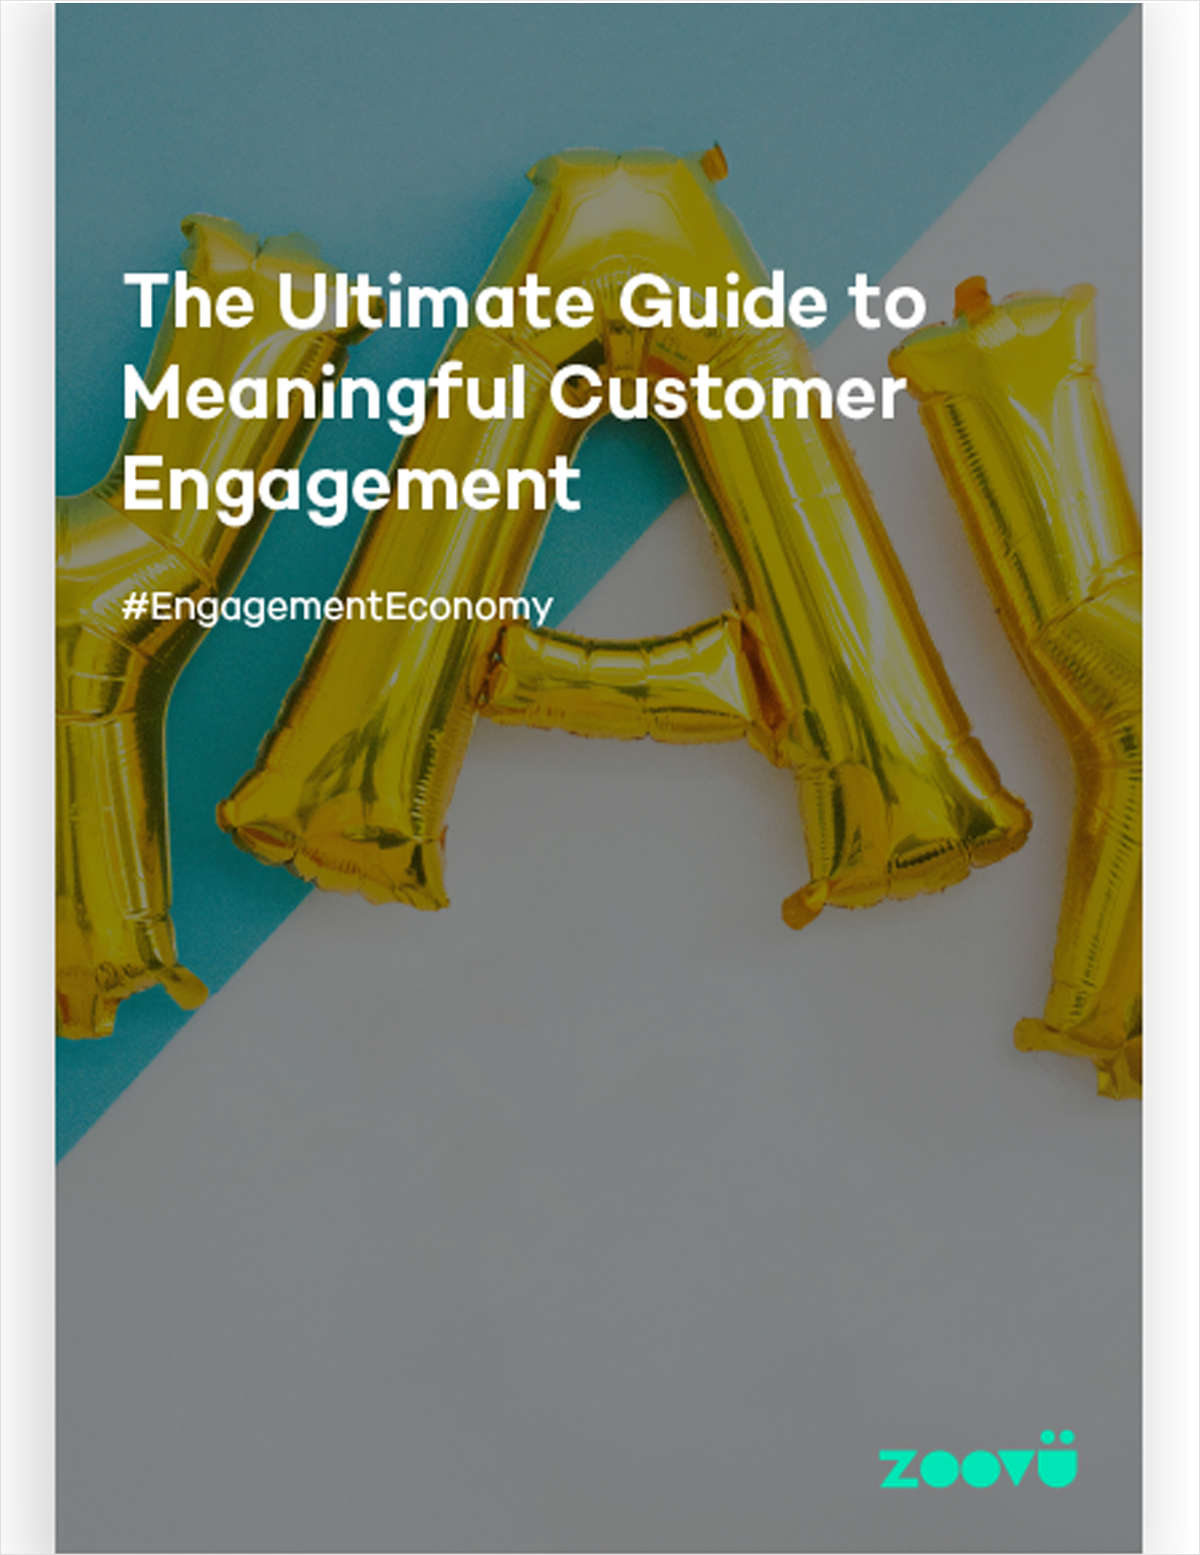 The Ultimate Guide to Meaningful Customer Engagement